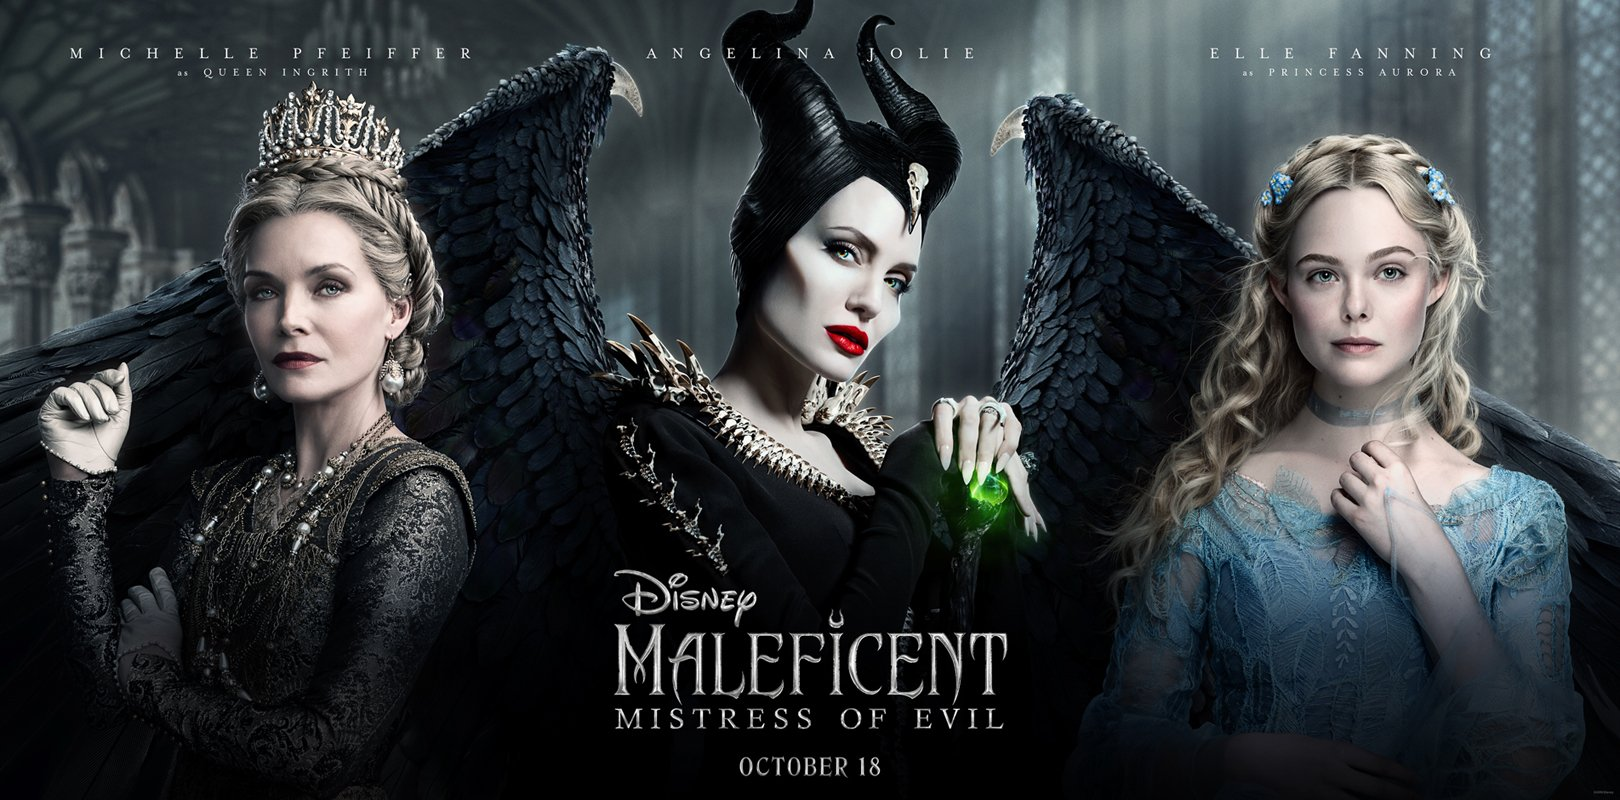 Maleficent: Mistress of Evil Teaser Trailer Unleashed